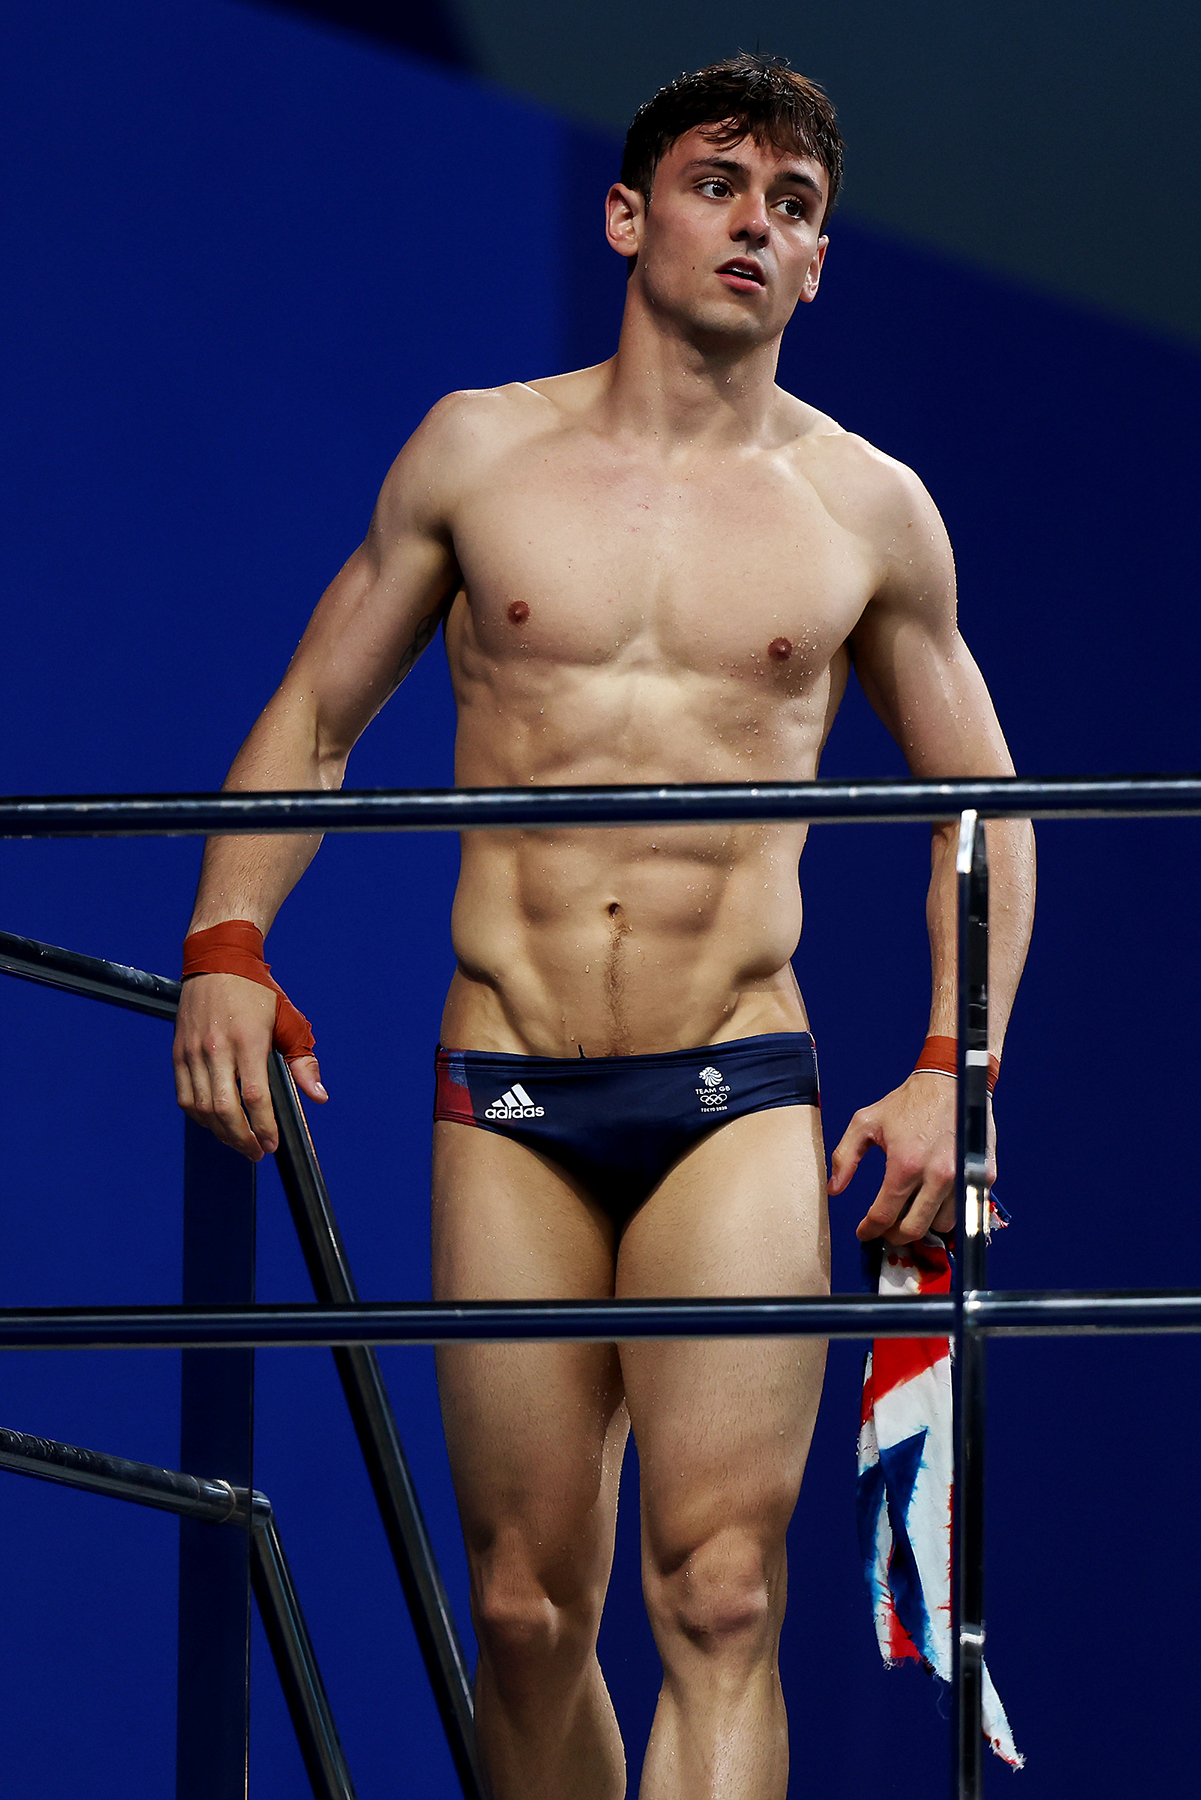 TOKYO, JAPAN - JULY 22: Tom Daley of Team Great Britain during aquatics training at the Tokyo Aquatics Centre ahead of the Tokyo 2020 Olympic Games on July 22, 2021 in Tokyo, Japan. (Photo by Clive Rose/Getty Images)